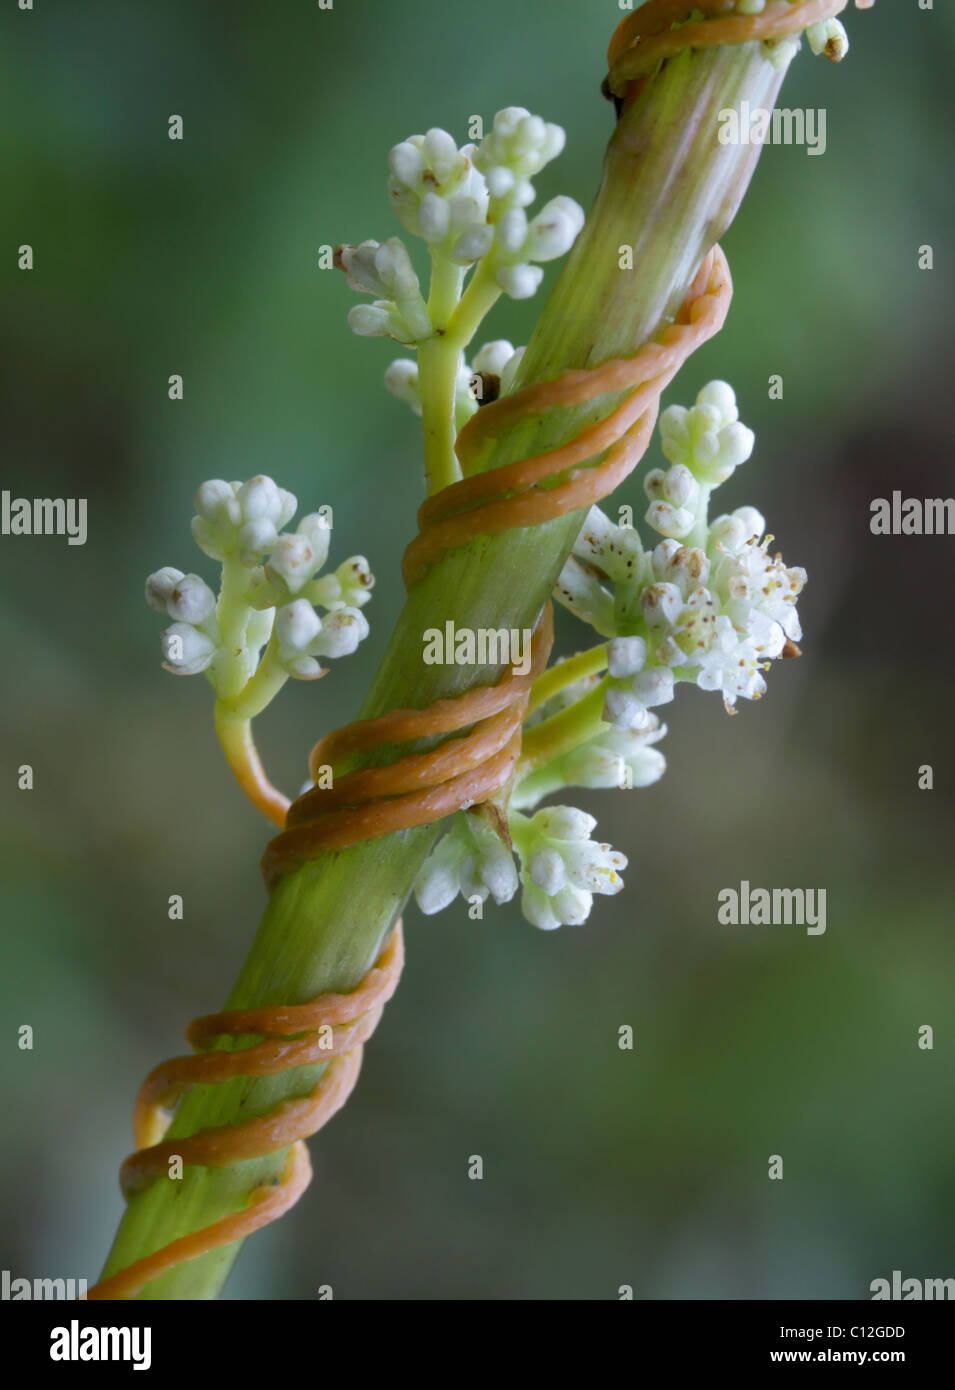 Dodder (Cuscuta sp.) in bloom, parasitizing jewelweed. - Stock Image